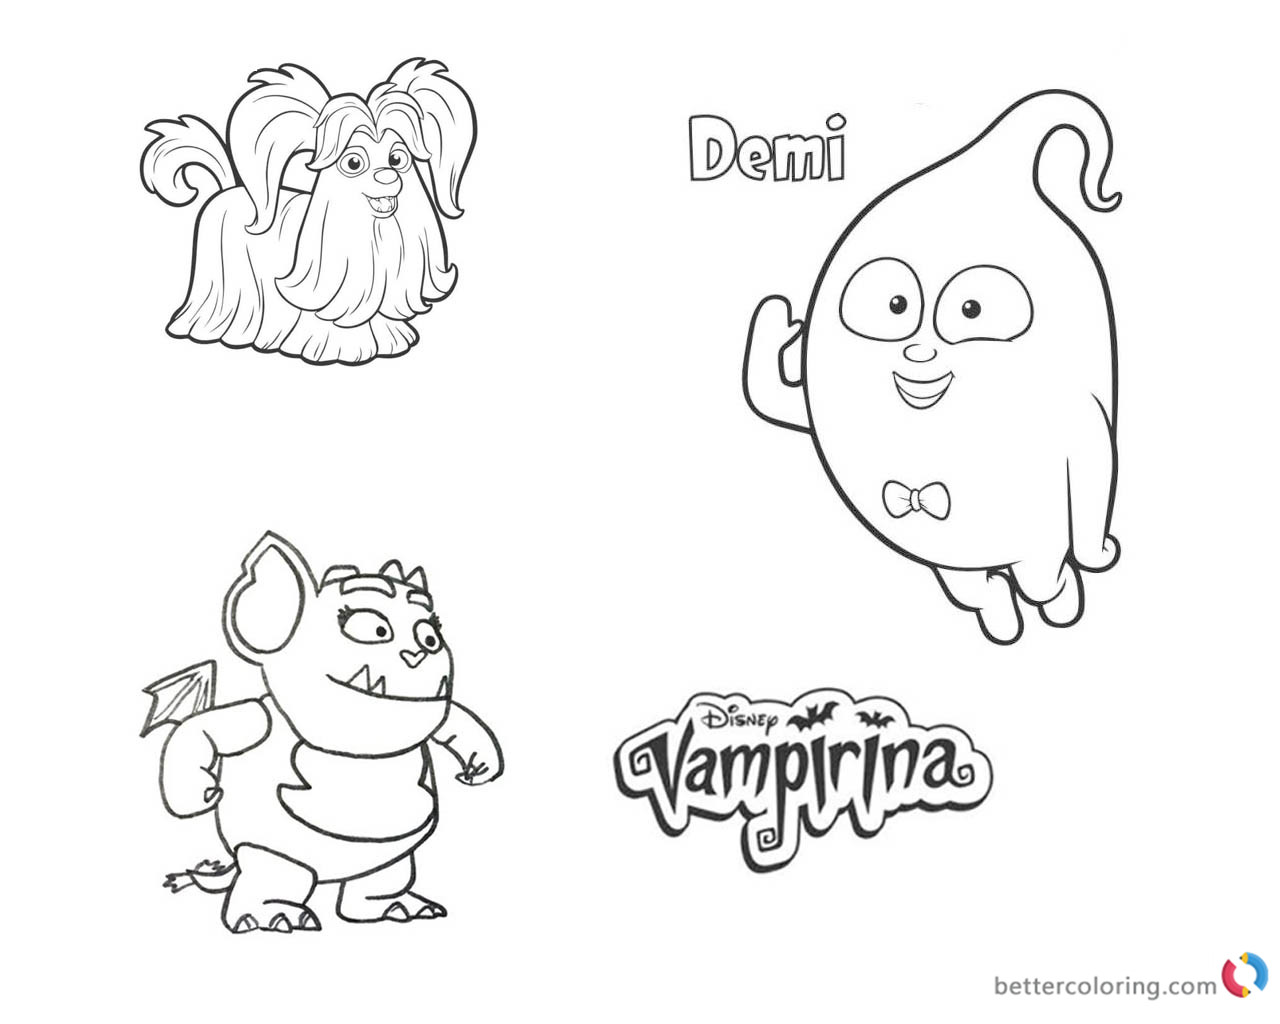 Vampirina coloring pages Wolfie